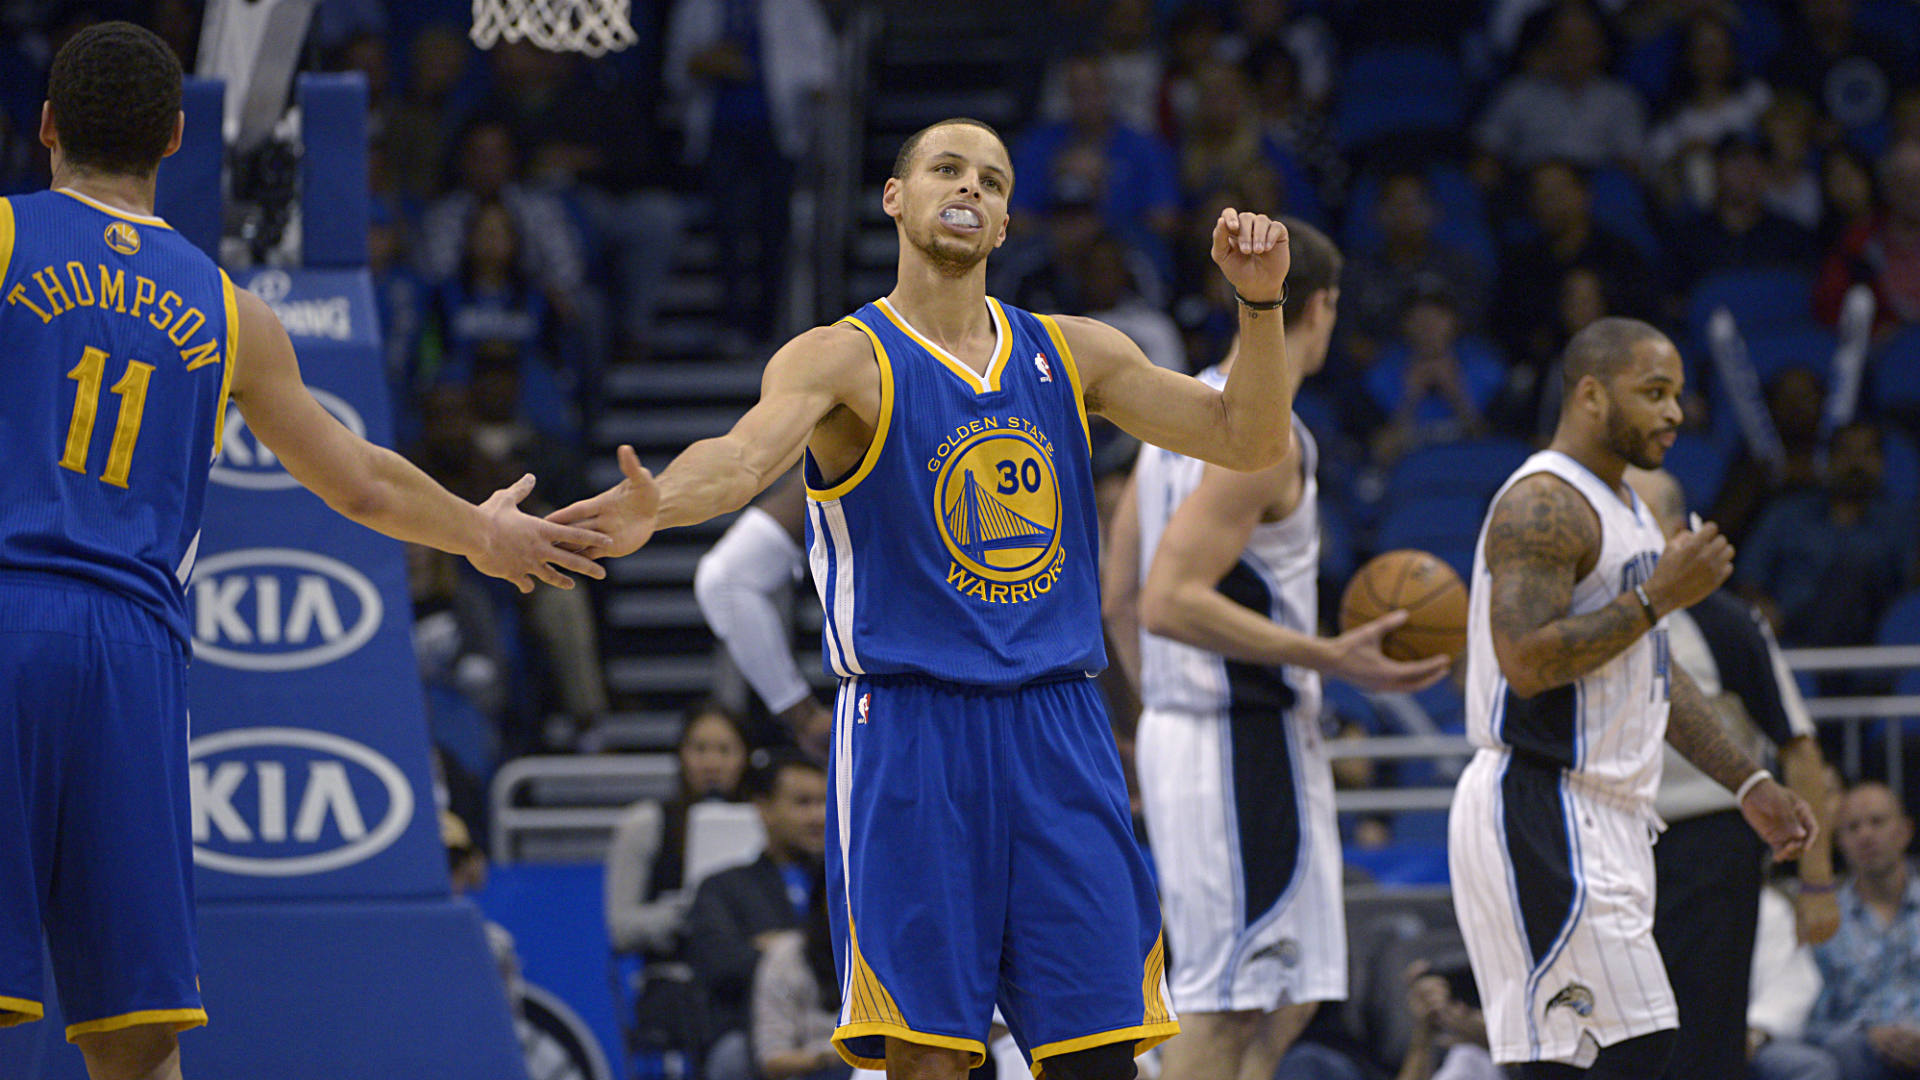 Curry-Thompson-072814-AP-FTR.jpg